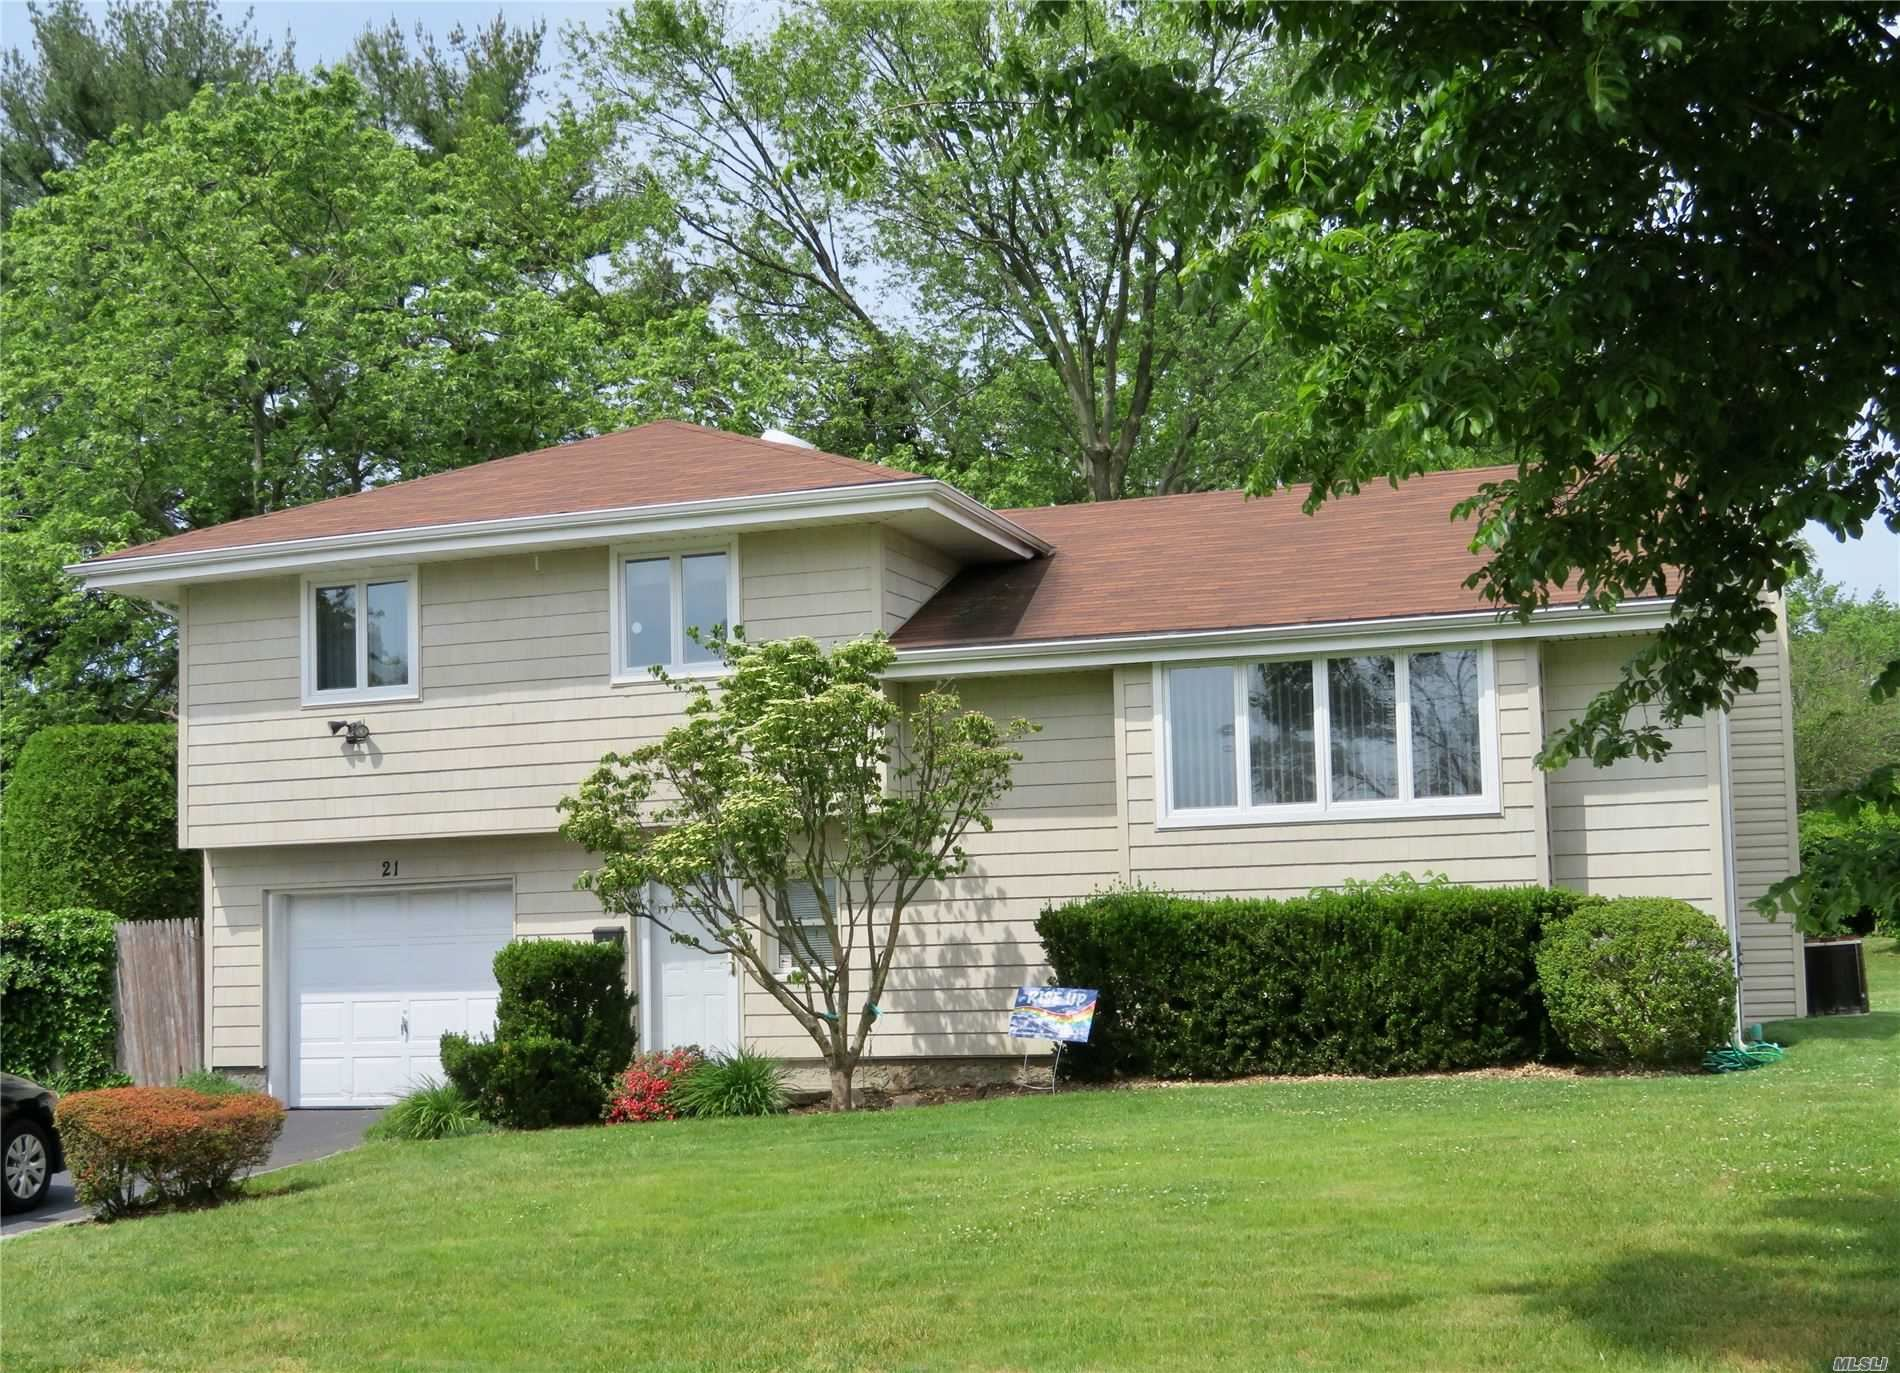 21 Amherst Drive, Plainview, NY 11803 - MLS#: 3220145